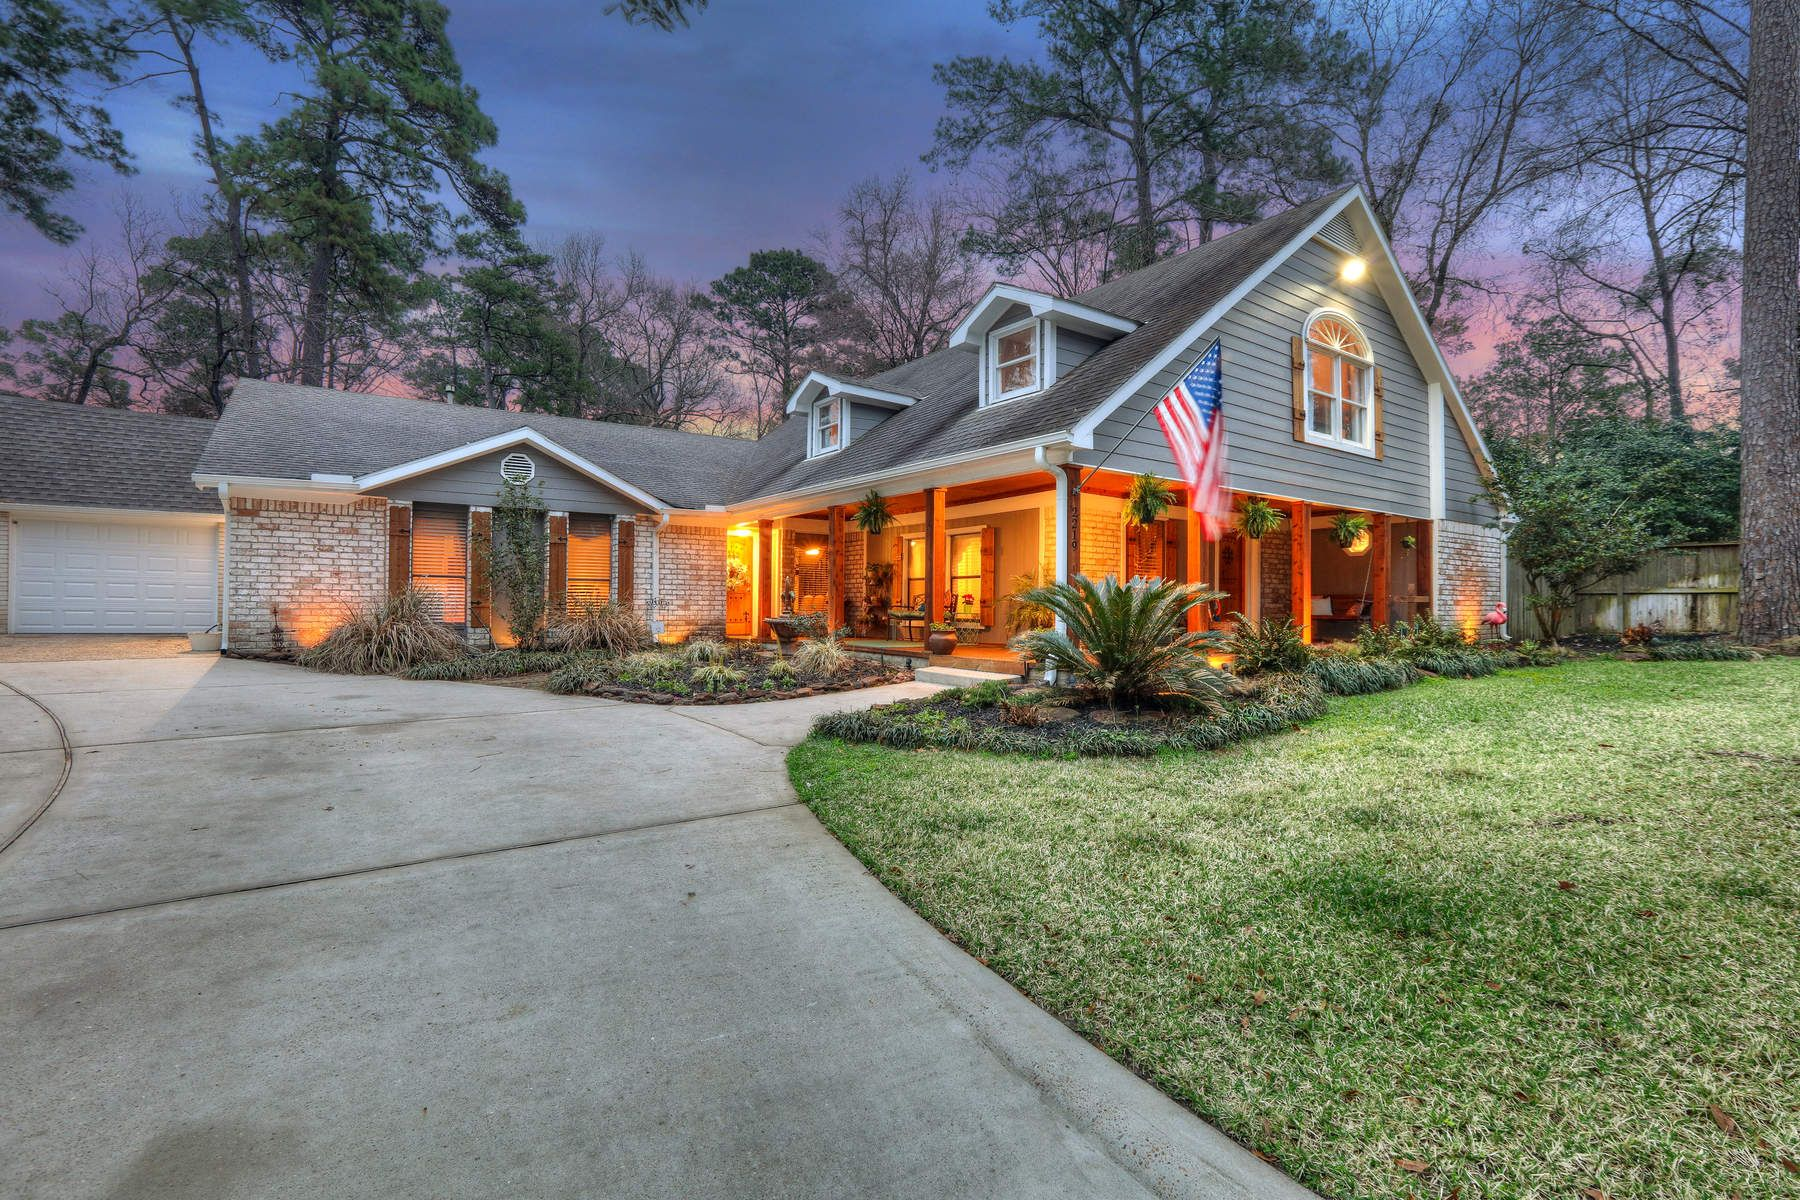 واحد منزل الأسرة للـ Sale في 2219 Dristone Drive Kingwood, Texas, 77339 United States